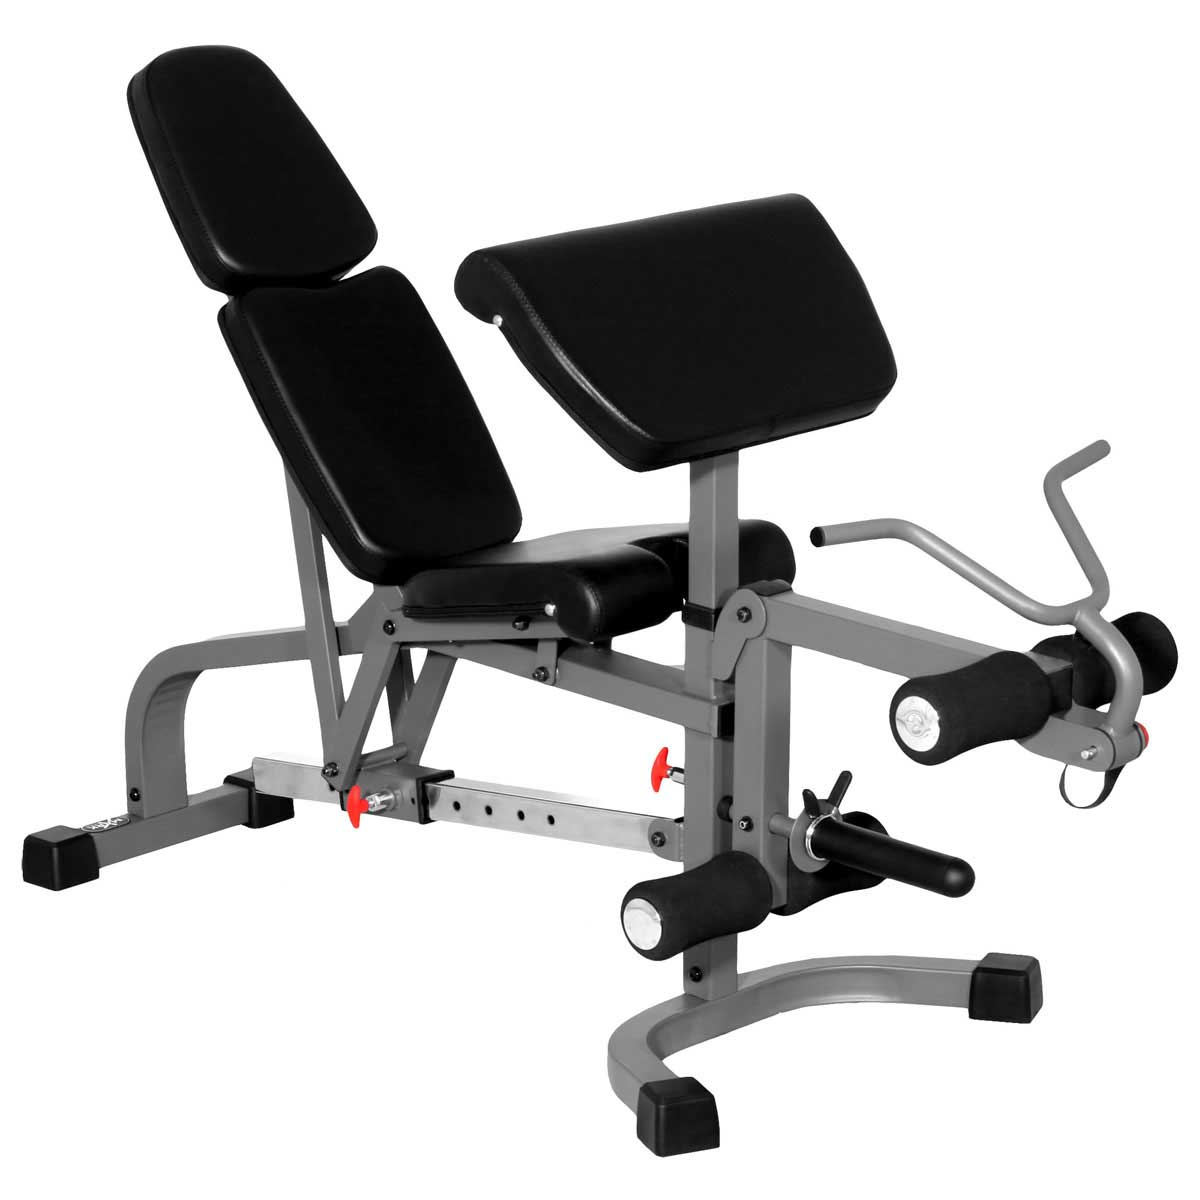 XMark FID Flat Incline Decline Weight Bench with Leg Extension and Preacher Curl XM-4419